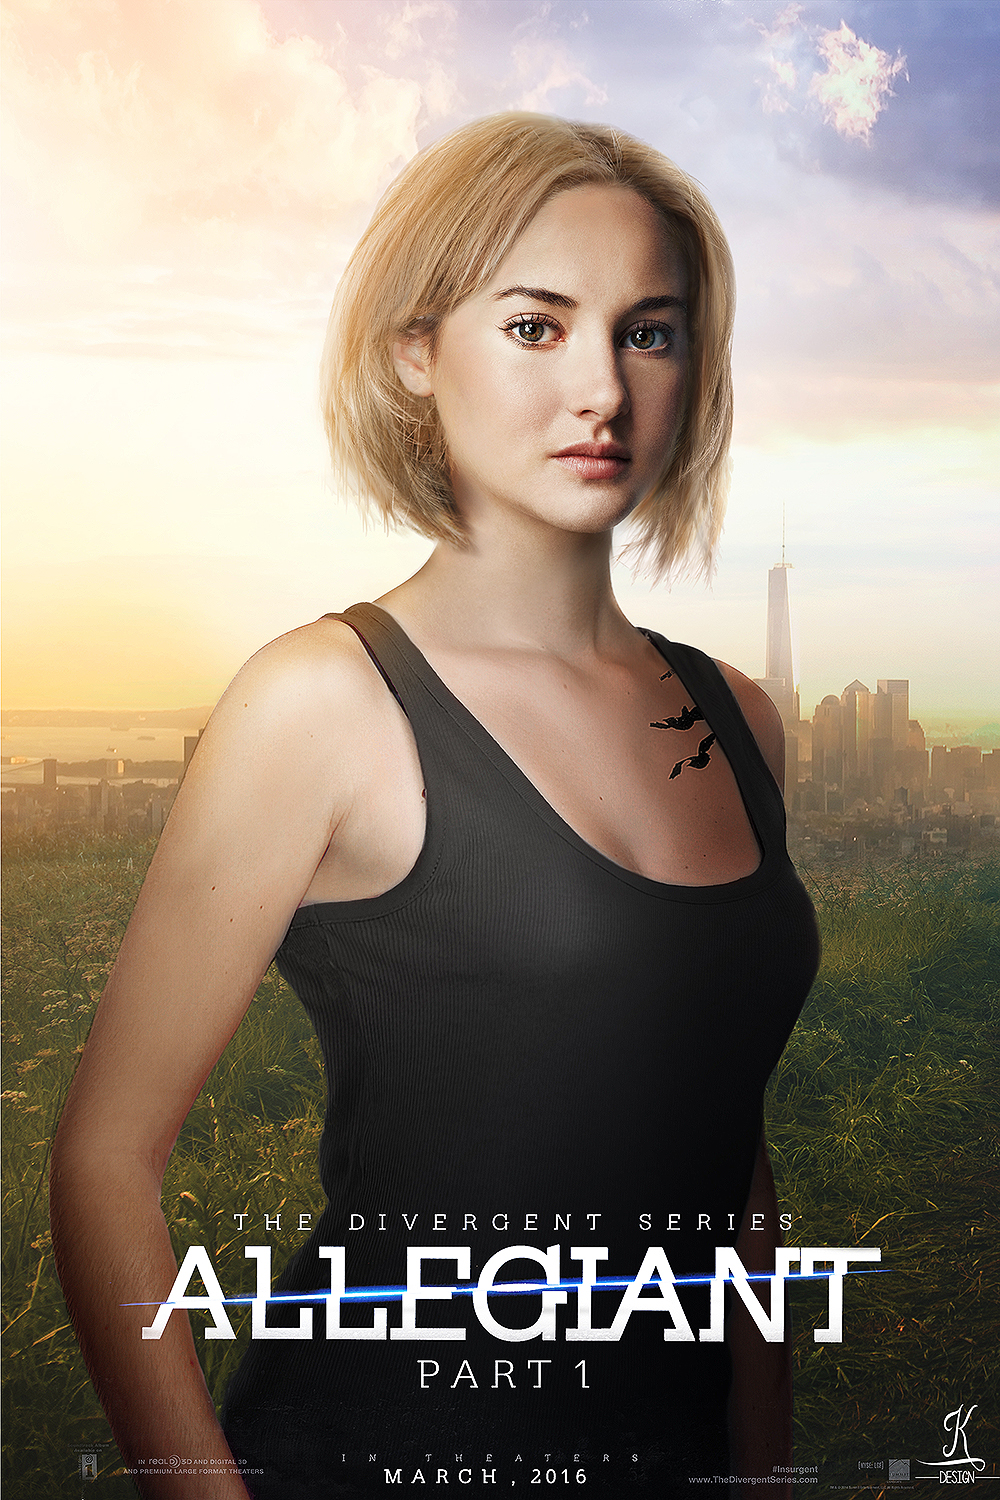 allegiant images tris prior hd wallpaper and background